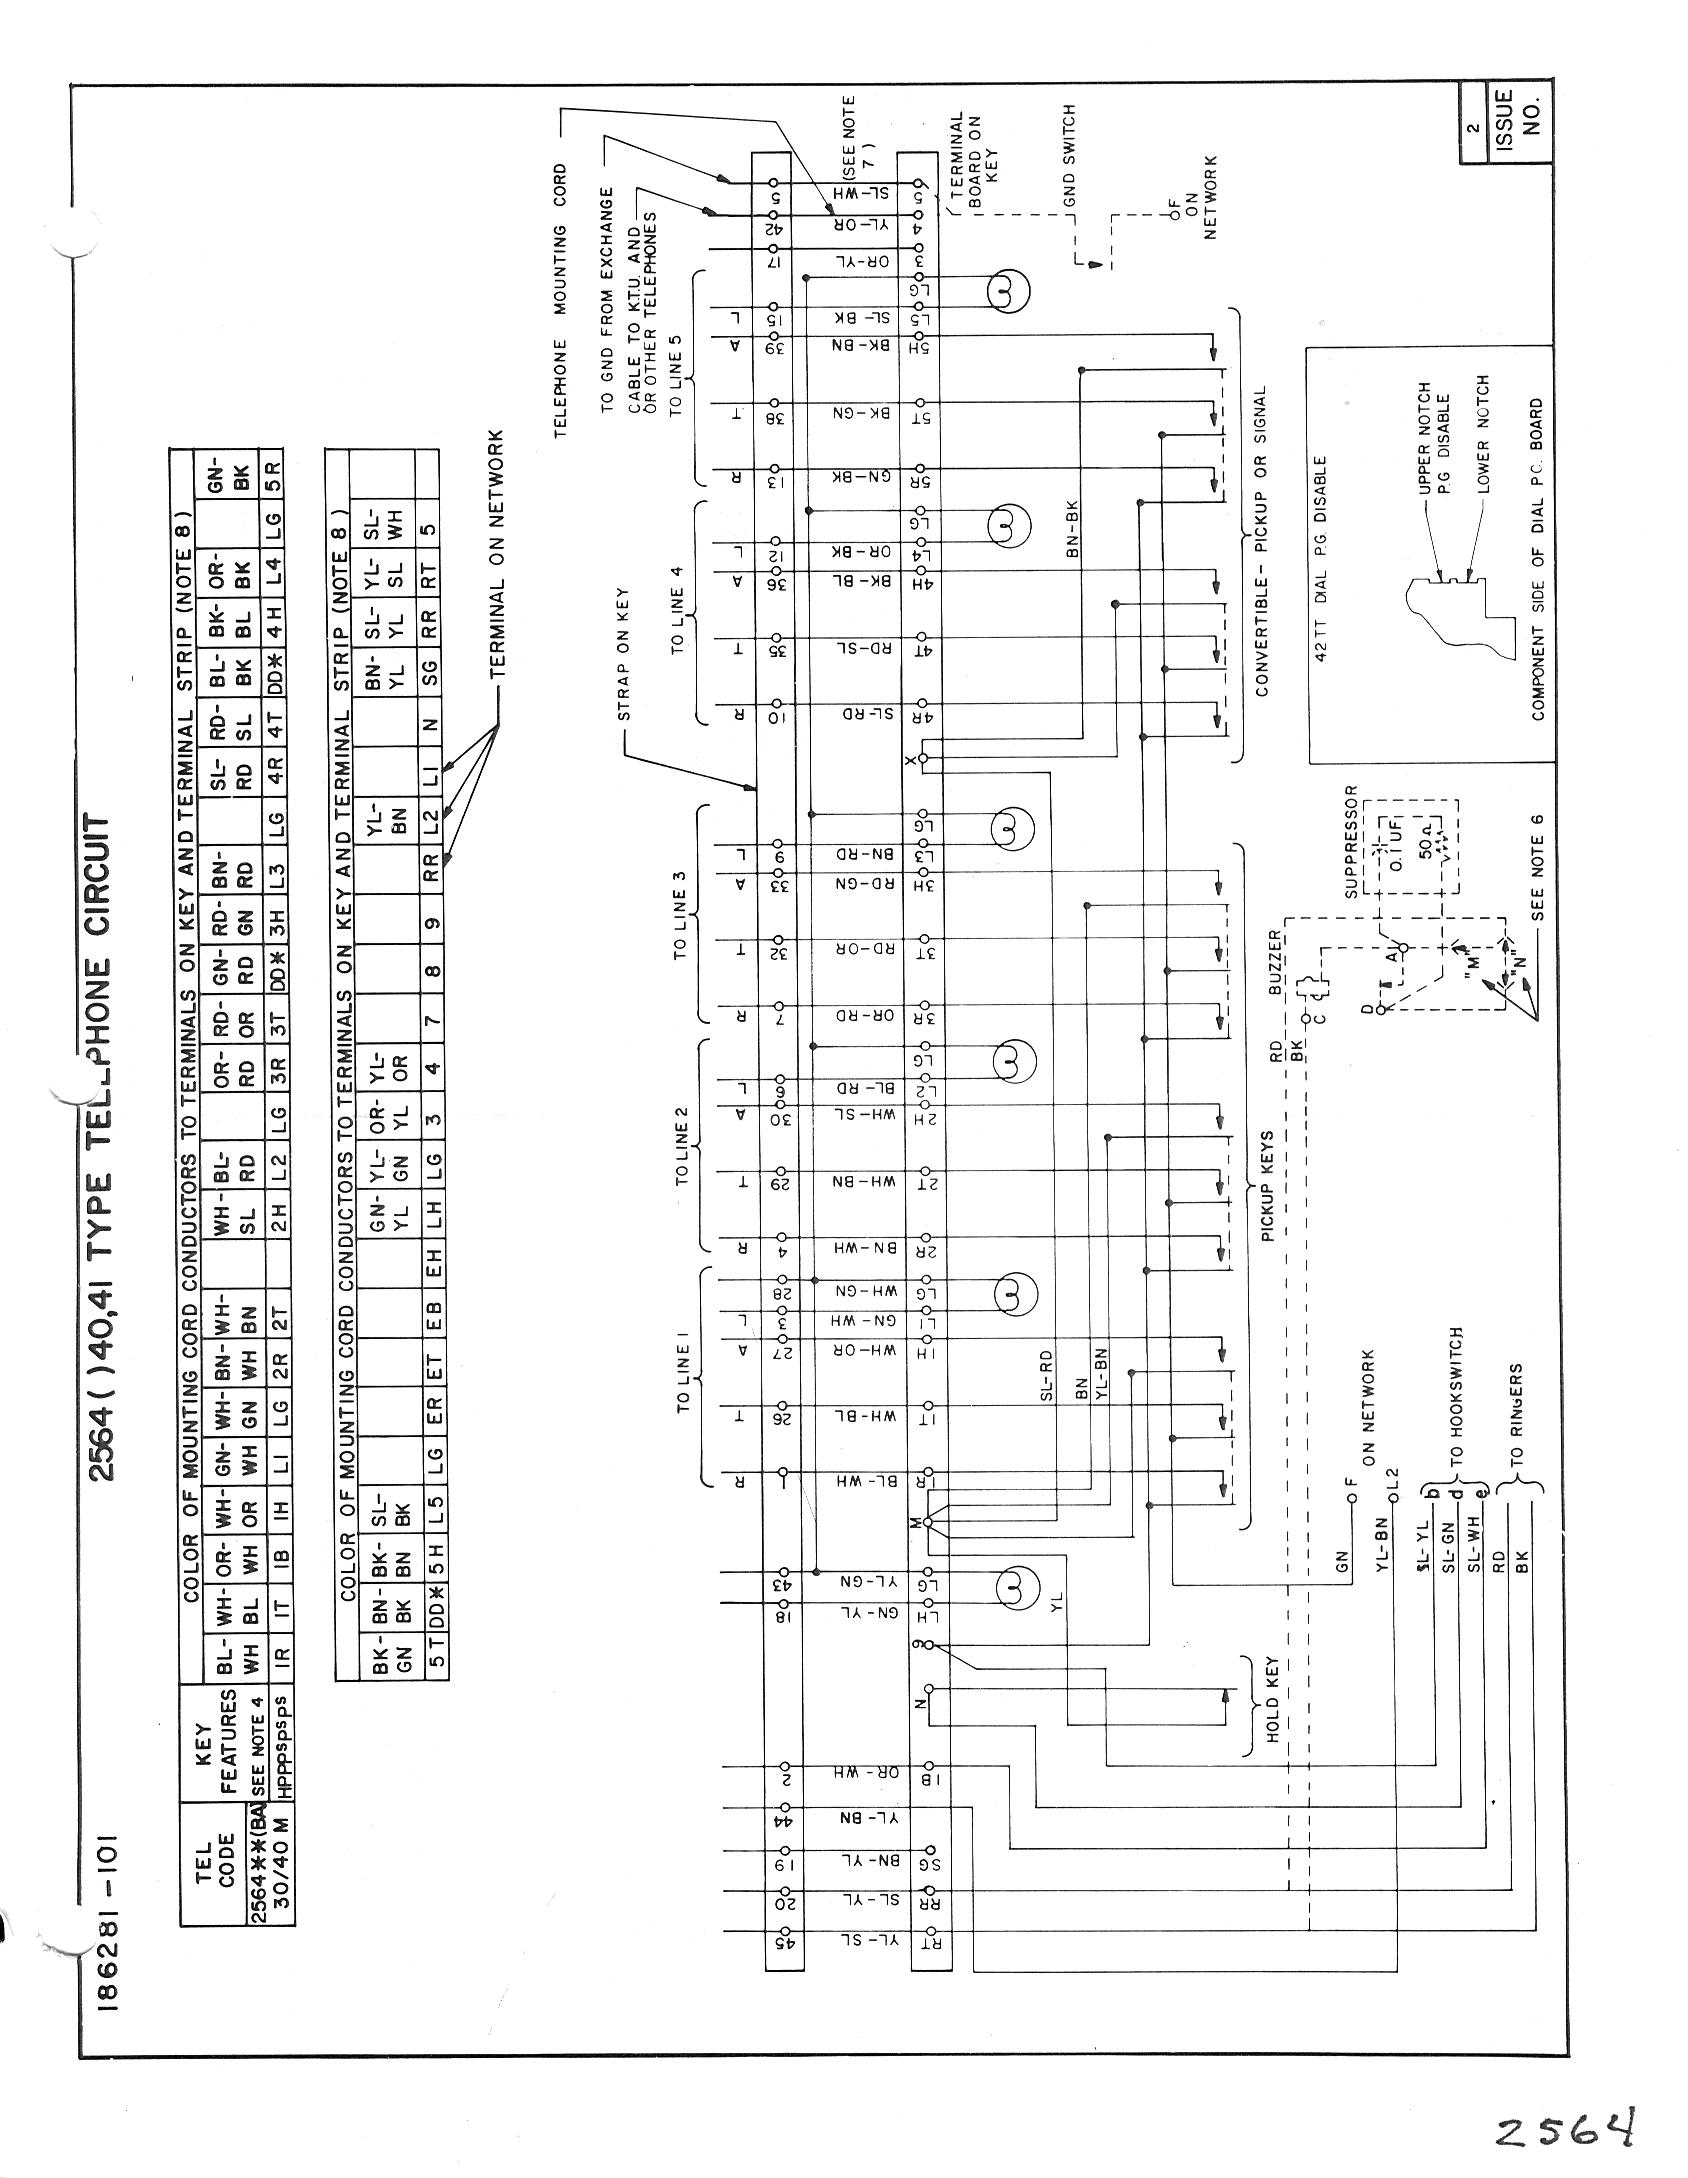 Adsl Modem Cable Wiring Diagram